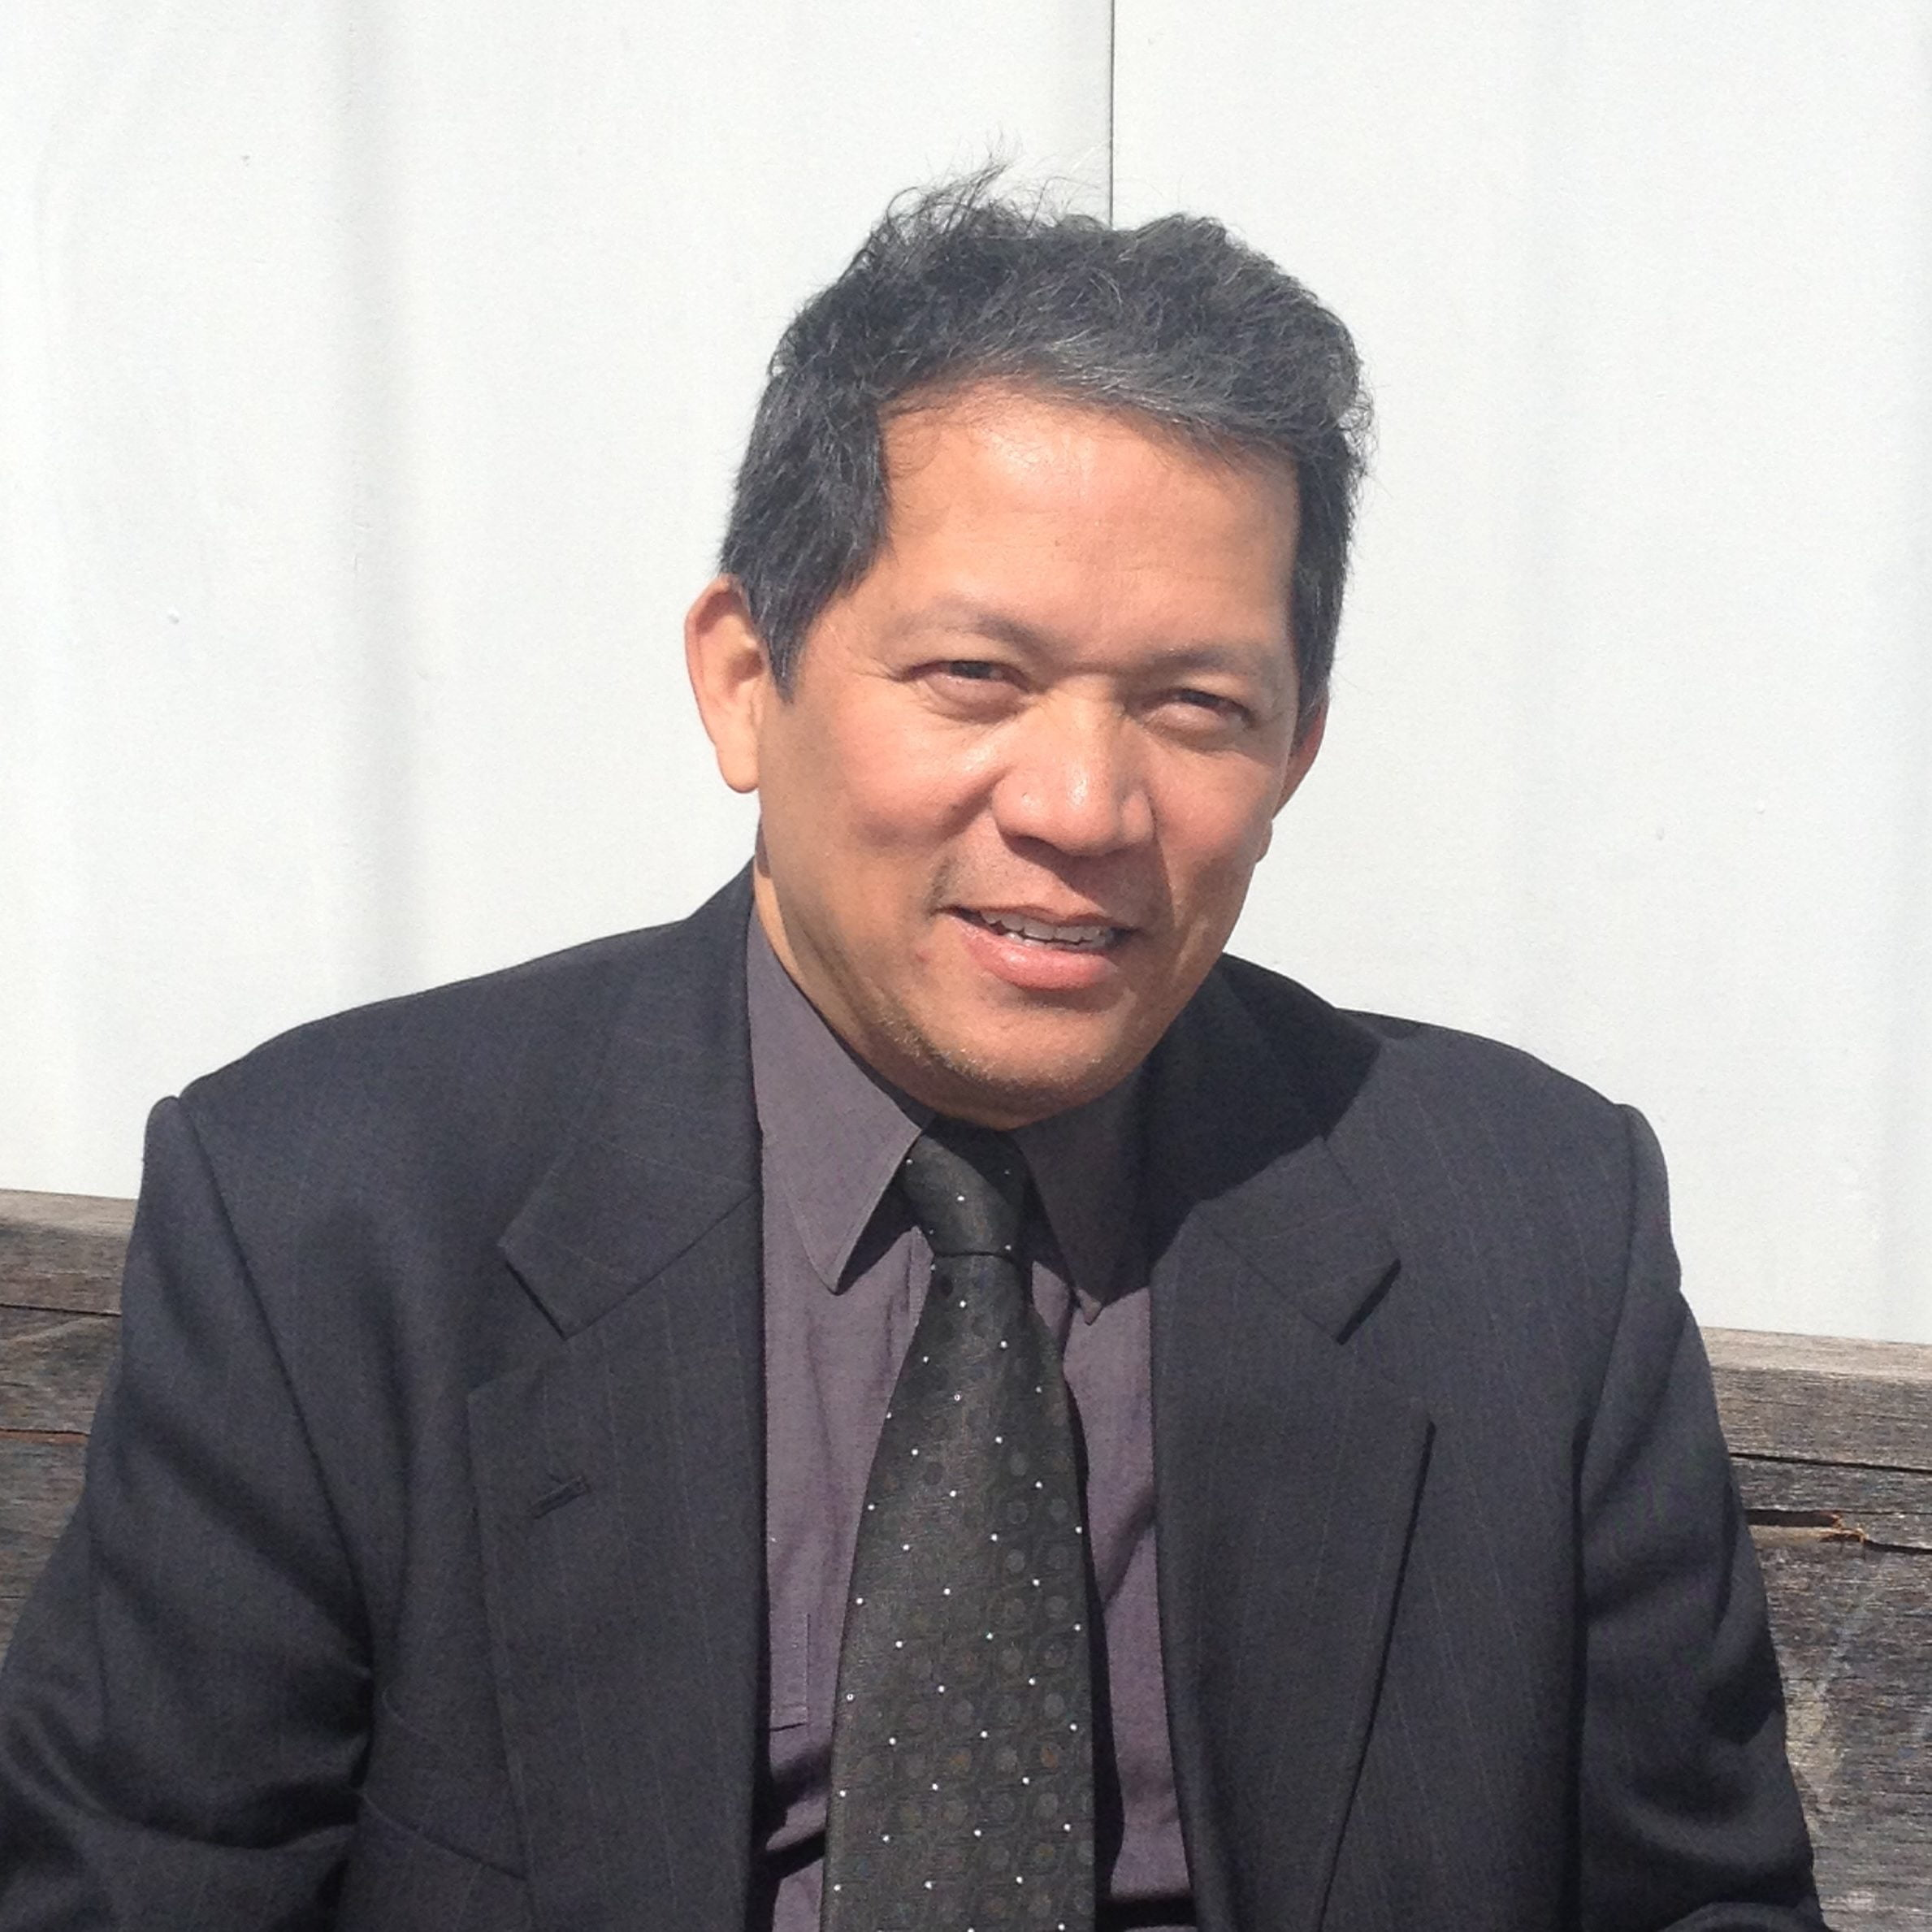 Photo of Kenneth Phua wearing a suit